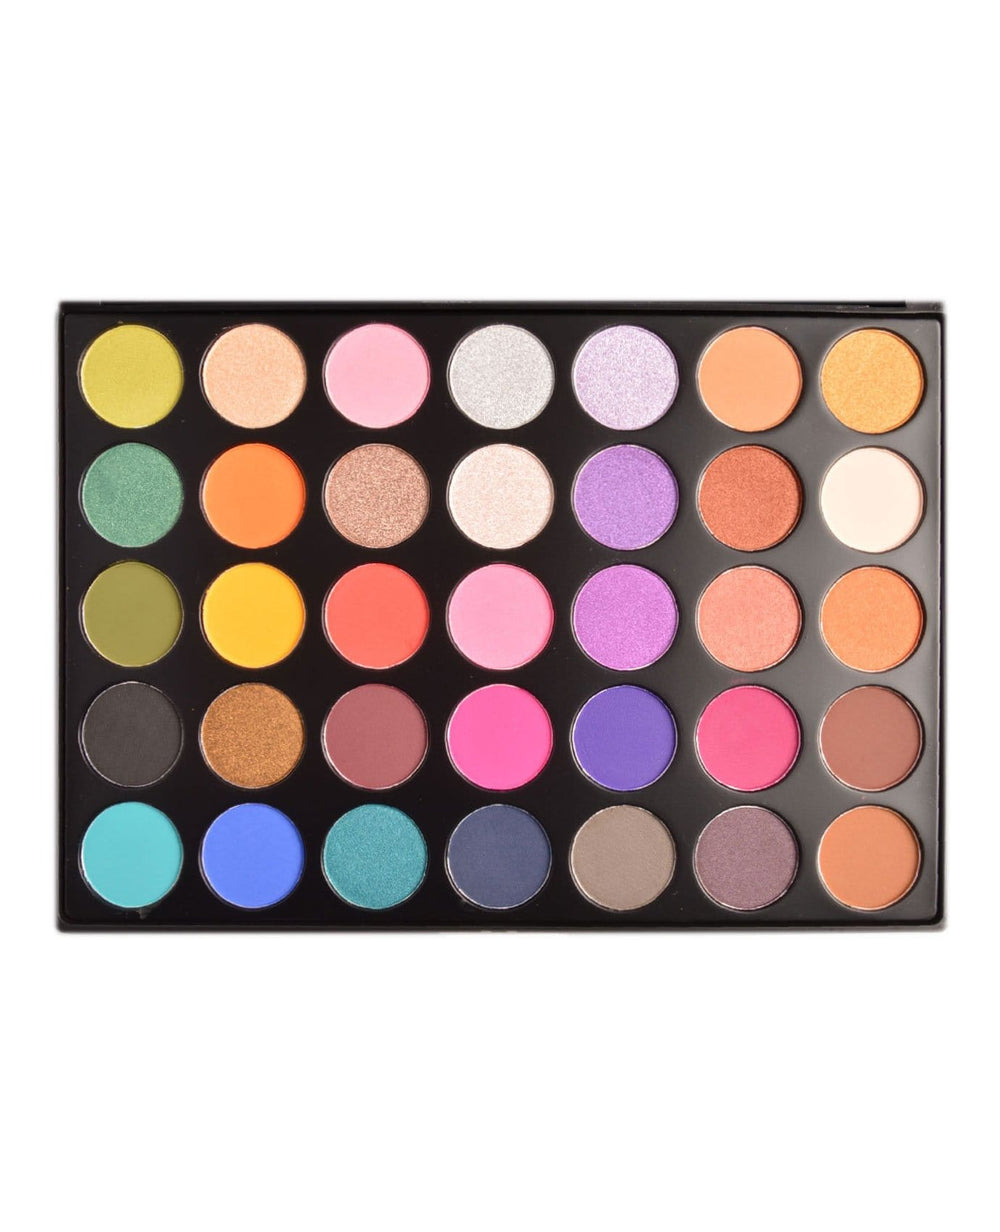 Kara Beauty ES11 Professional Eyeshadow Palette